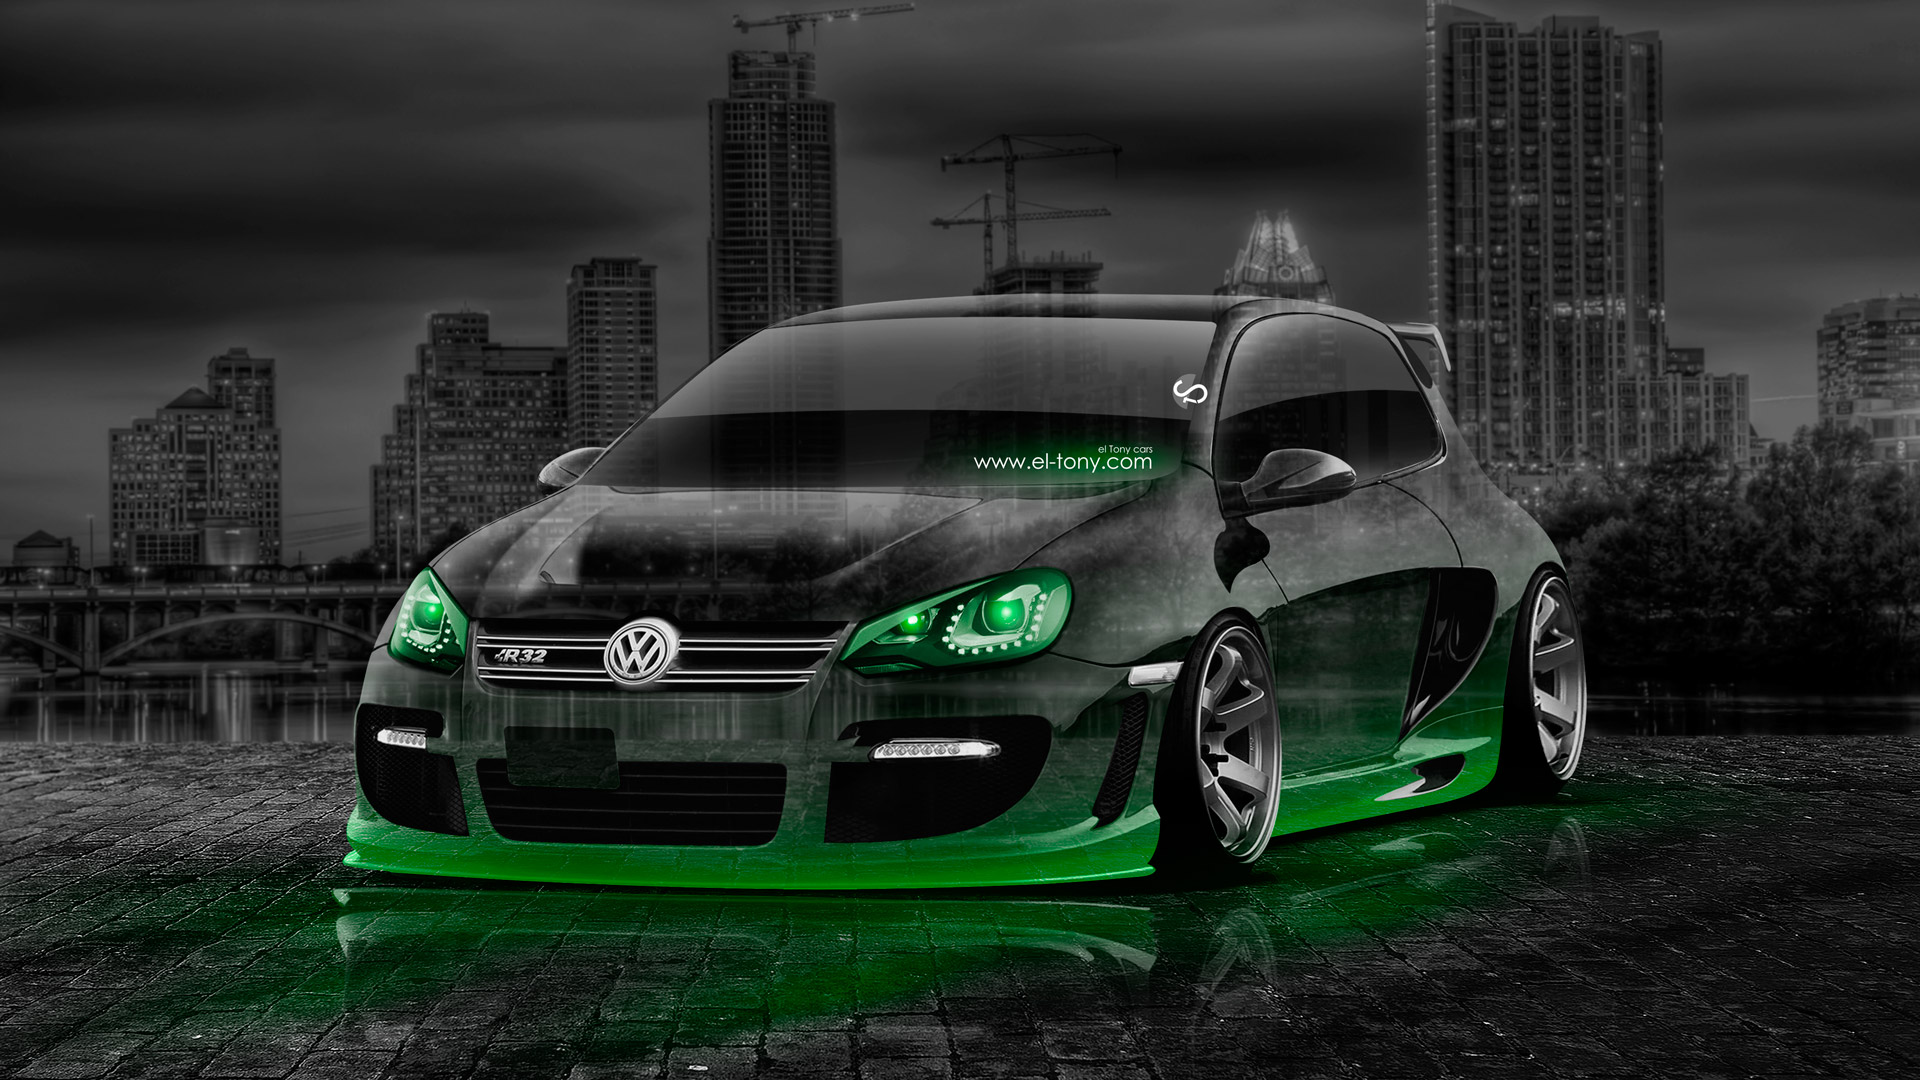 Volkswagen Golf Tuning Crystal City Car 2014 El Tony